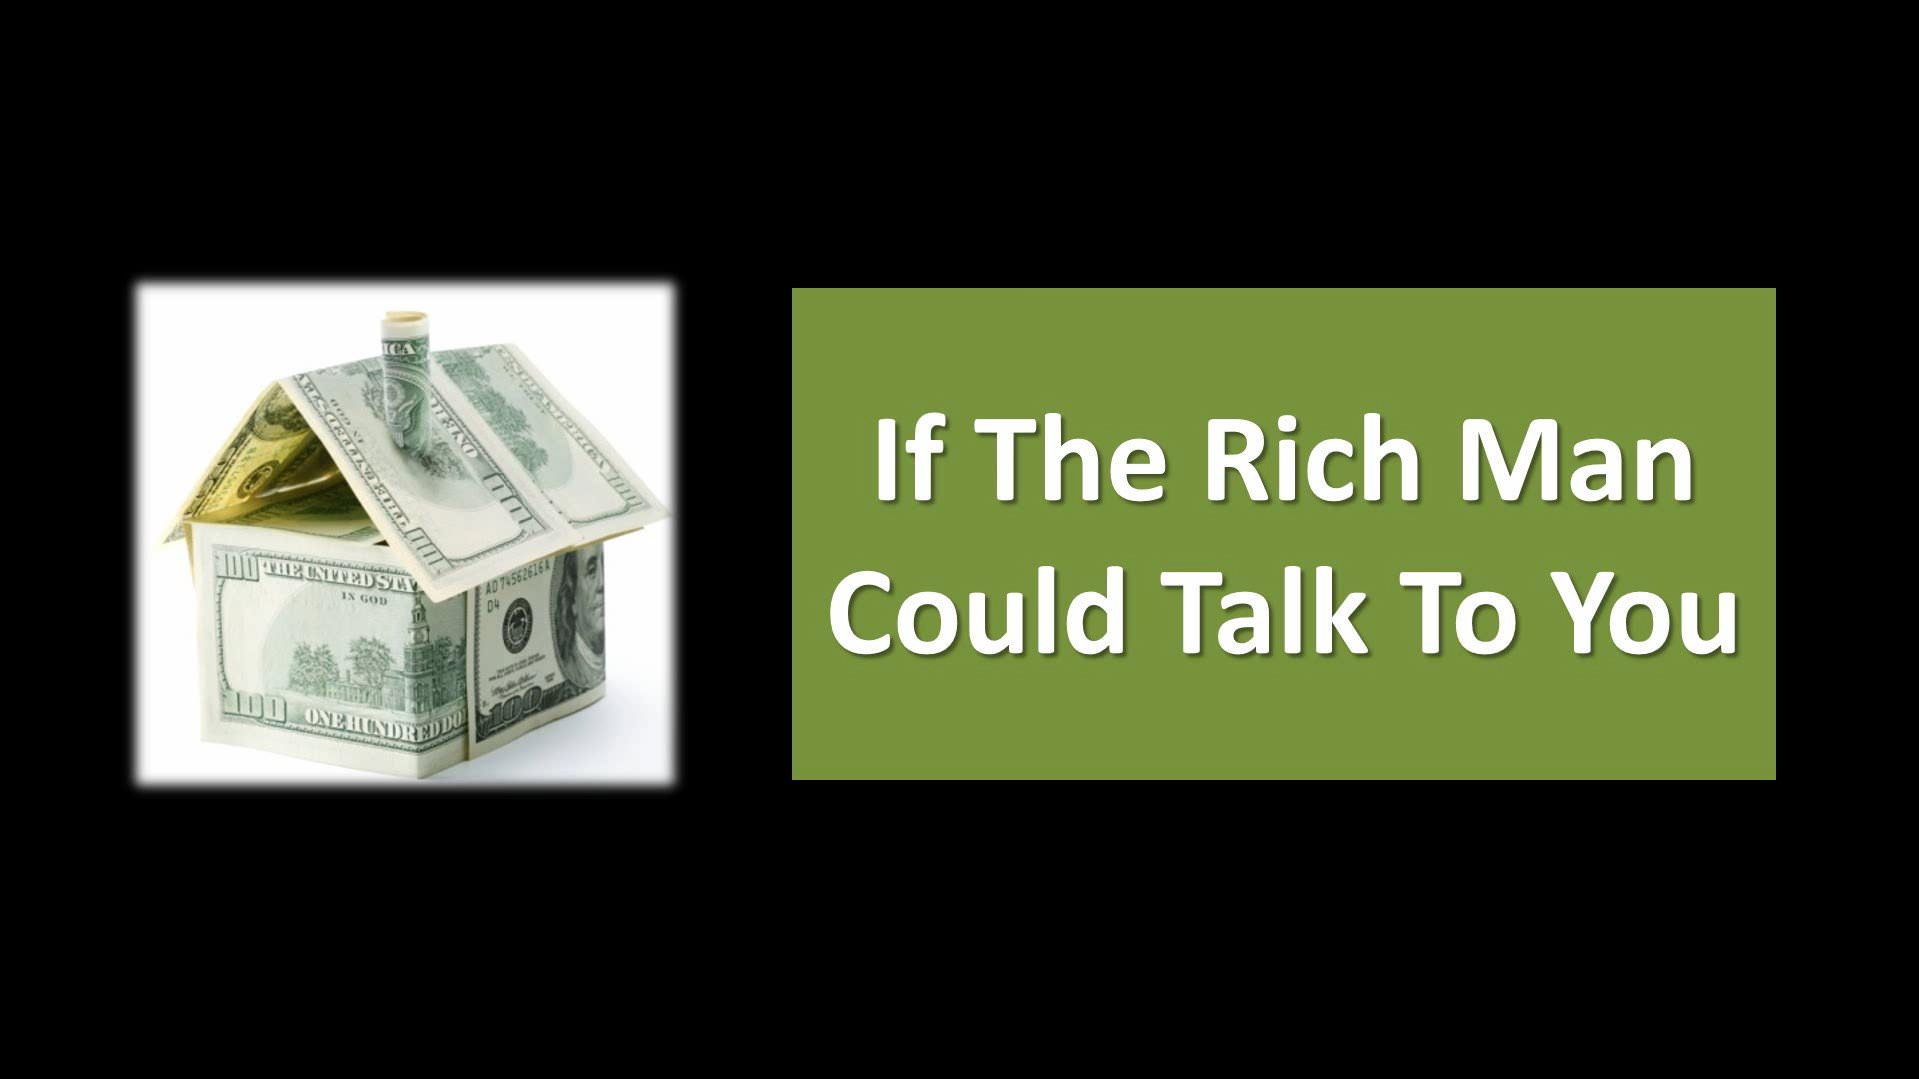 If The Rich Man Could Talk To You